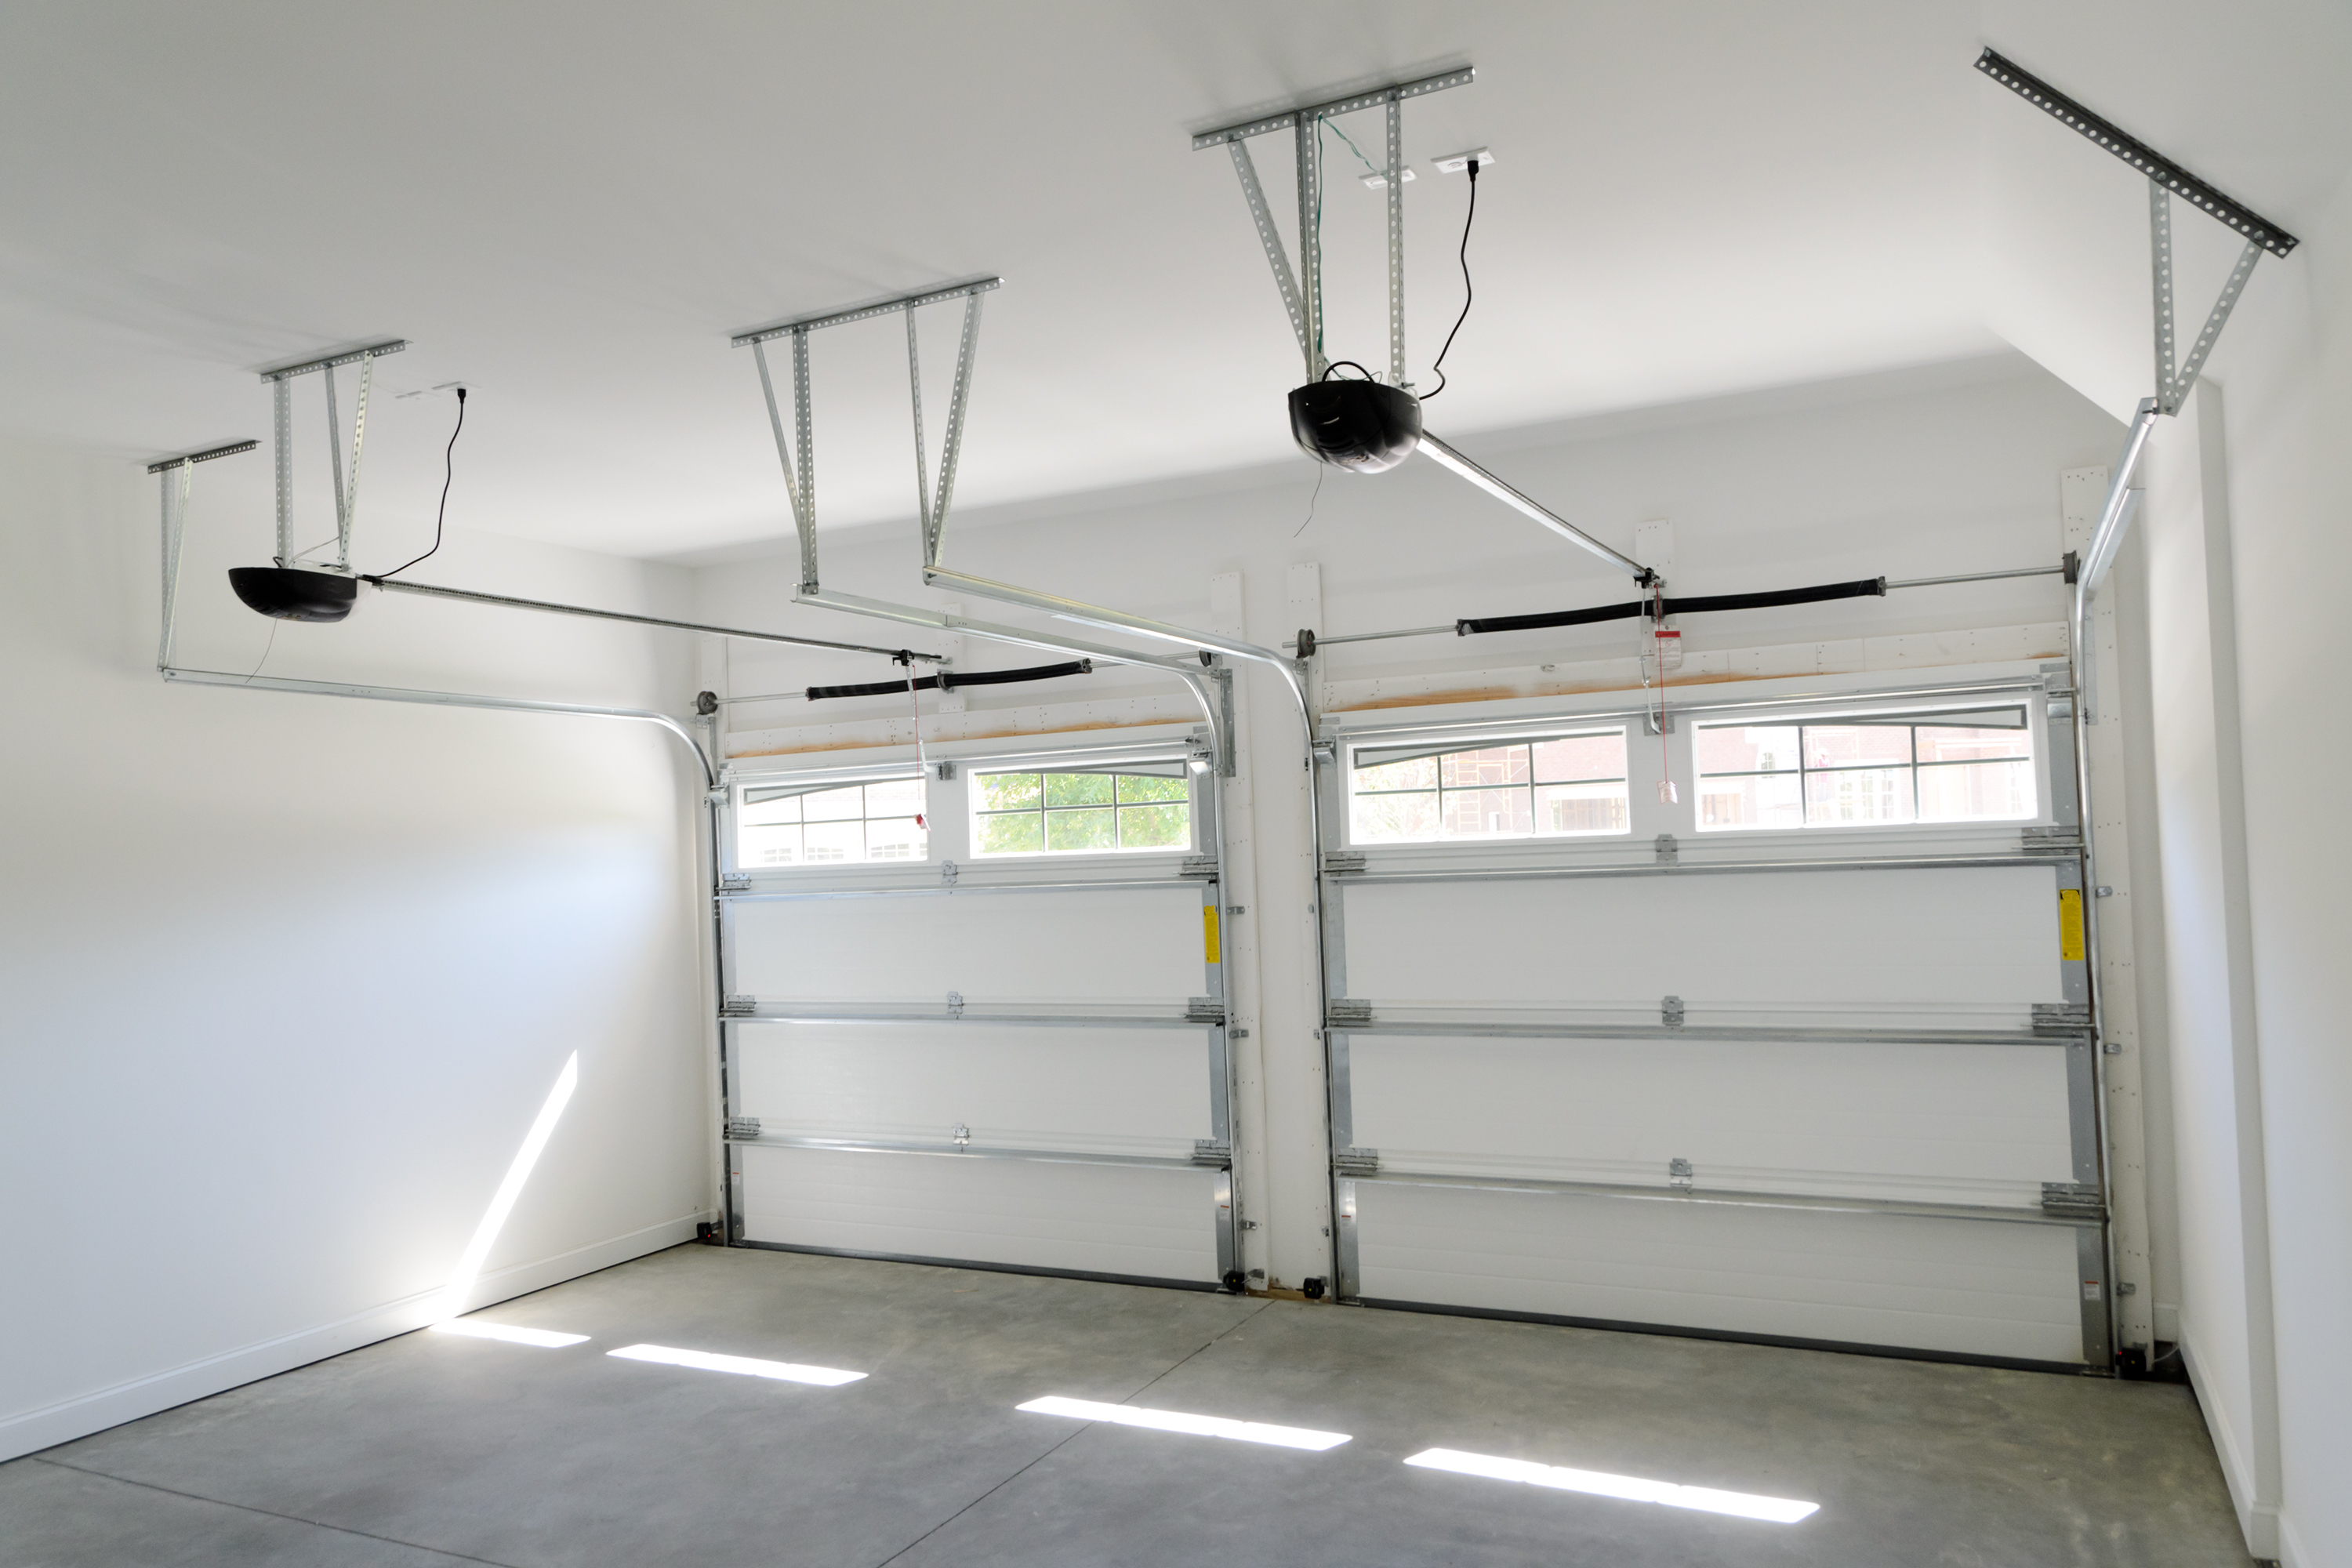 sell and install overhead long llc service we doors garage meadow calder johnshon pic door bill east